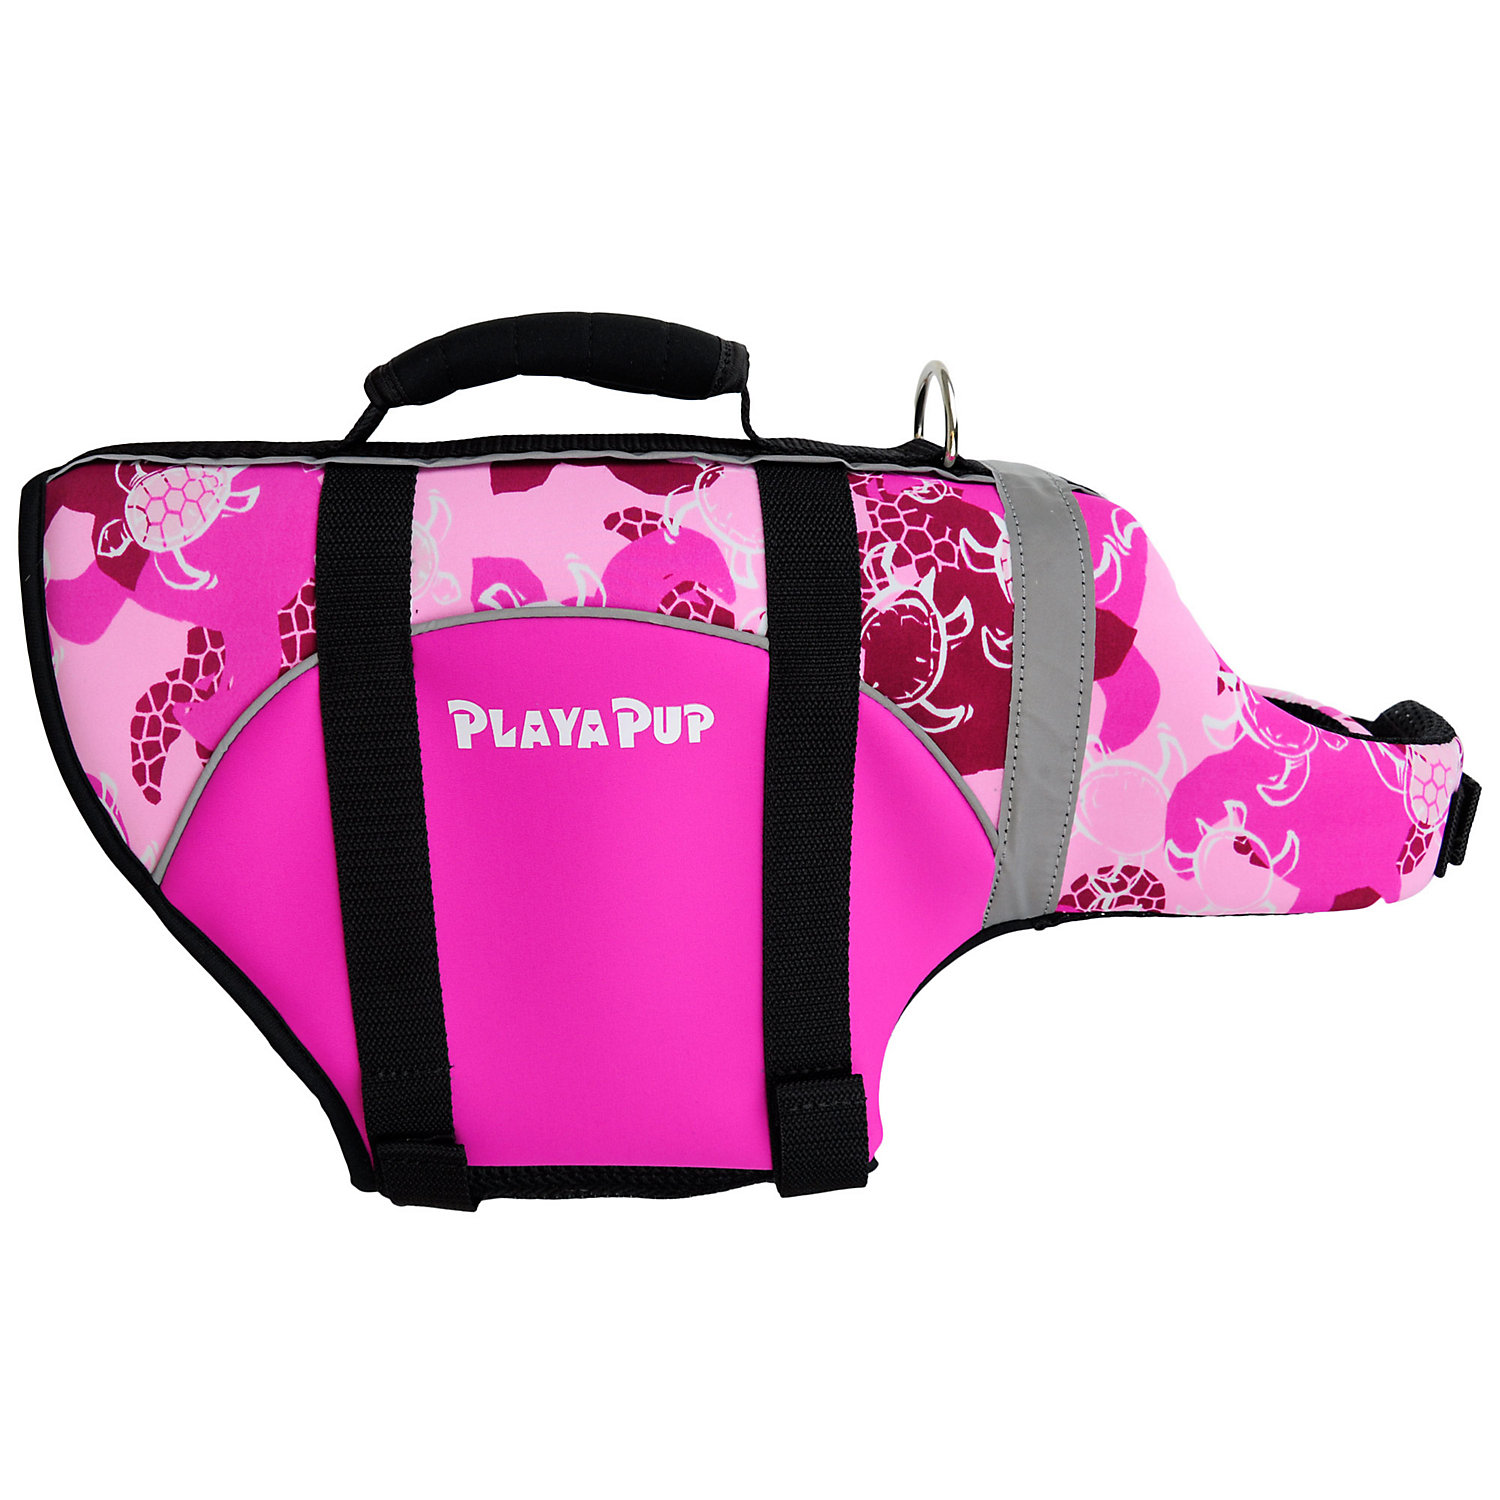 Image of Playa Pup Pink Dog Flotation Vest